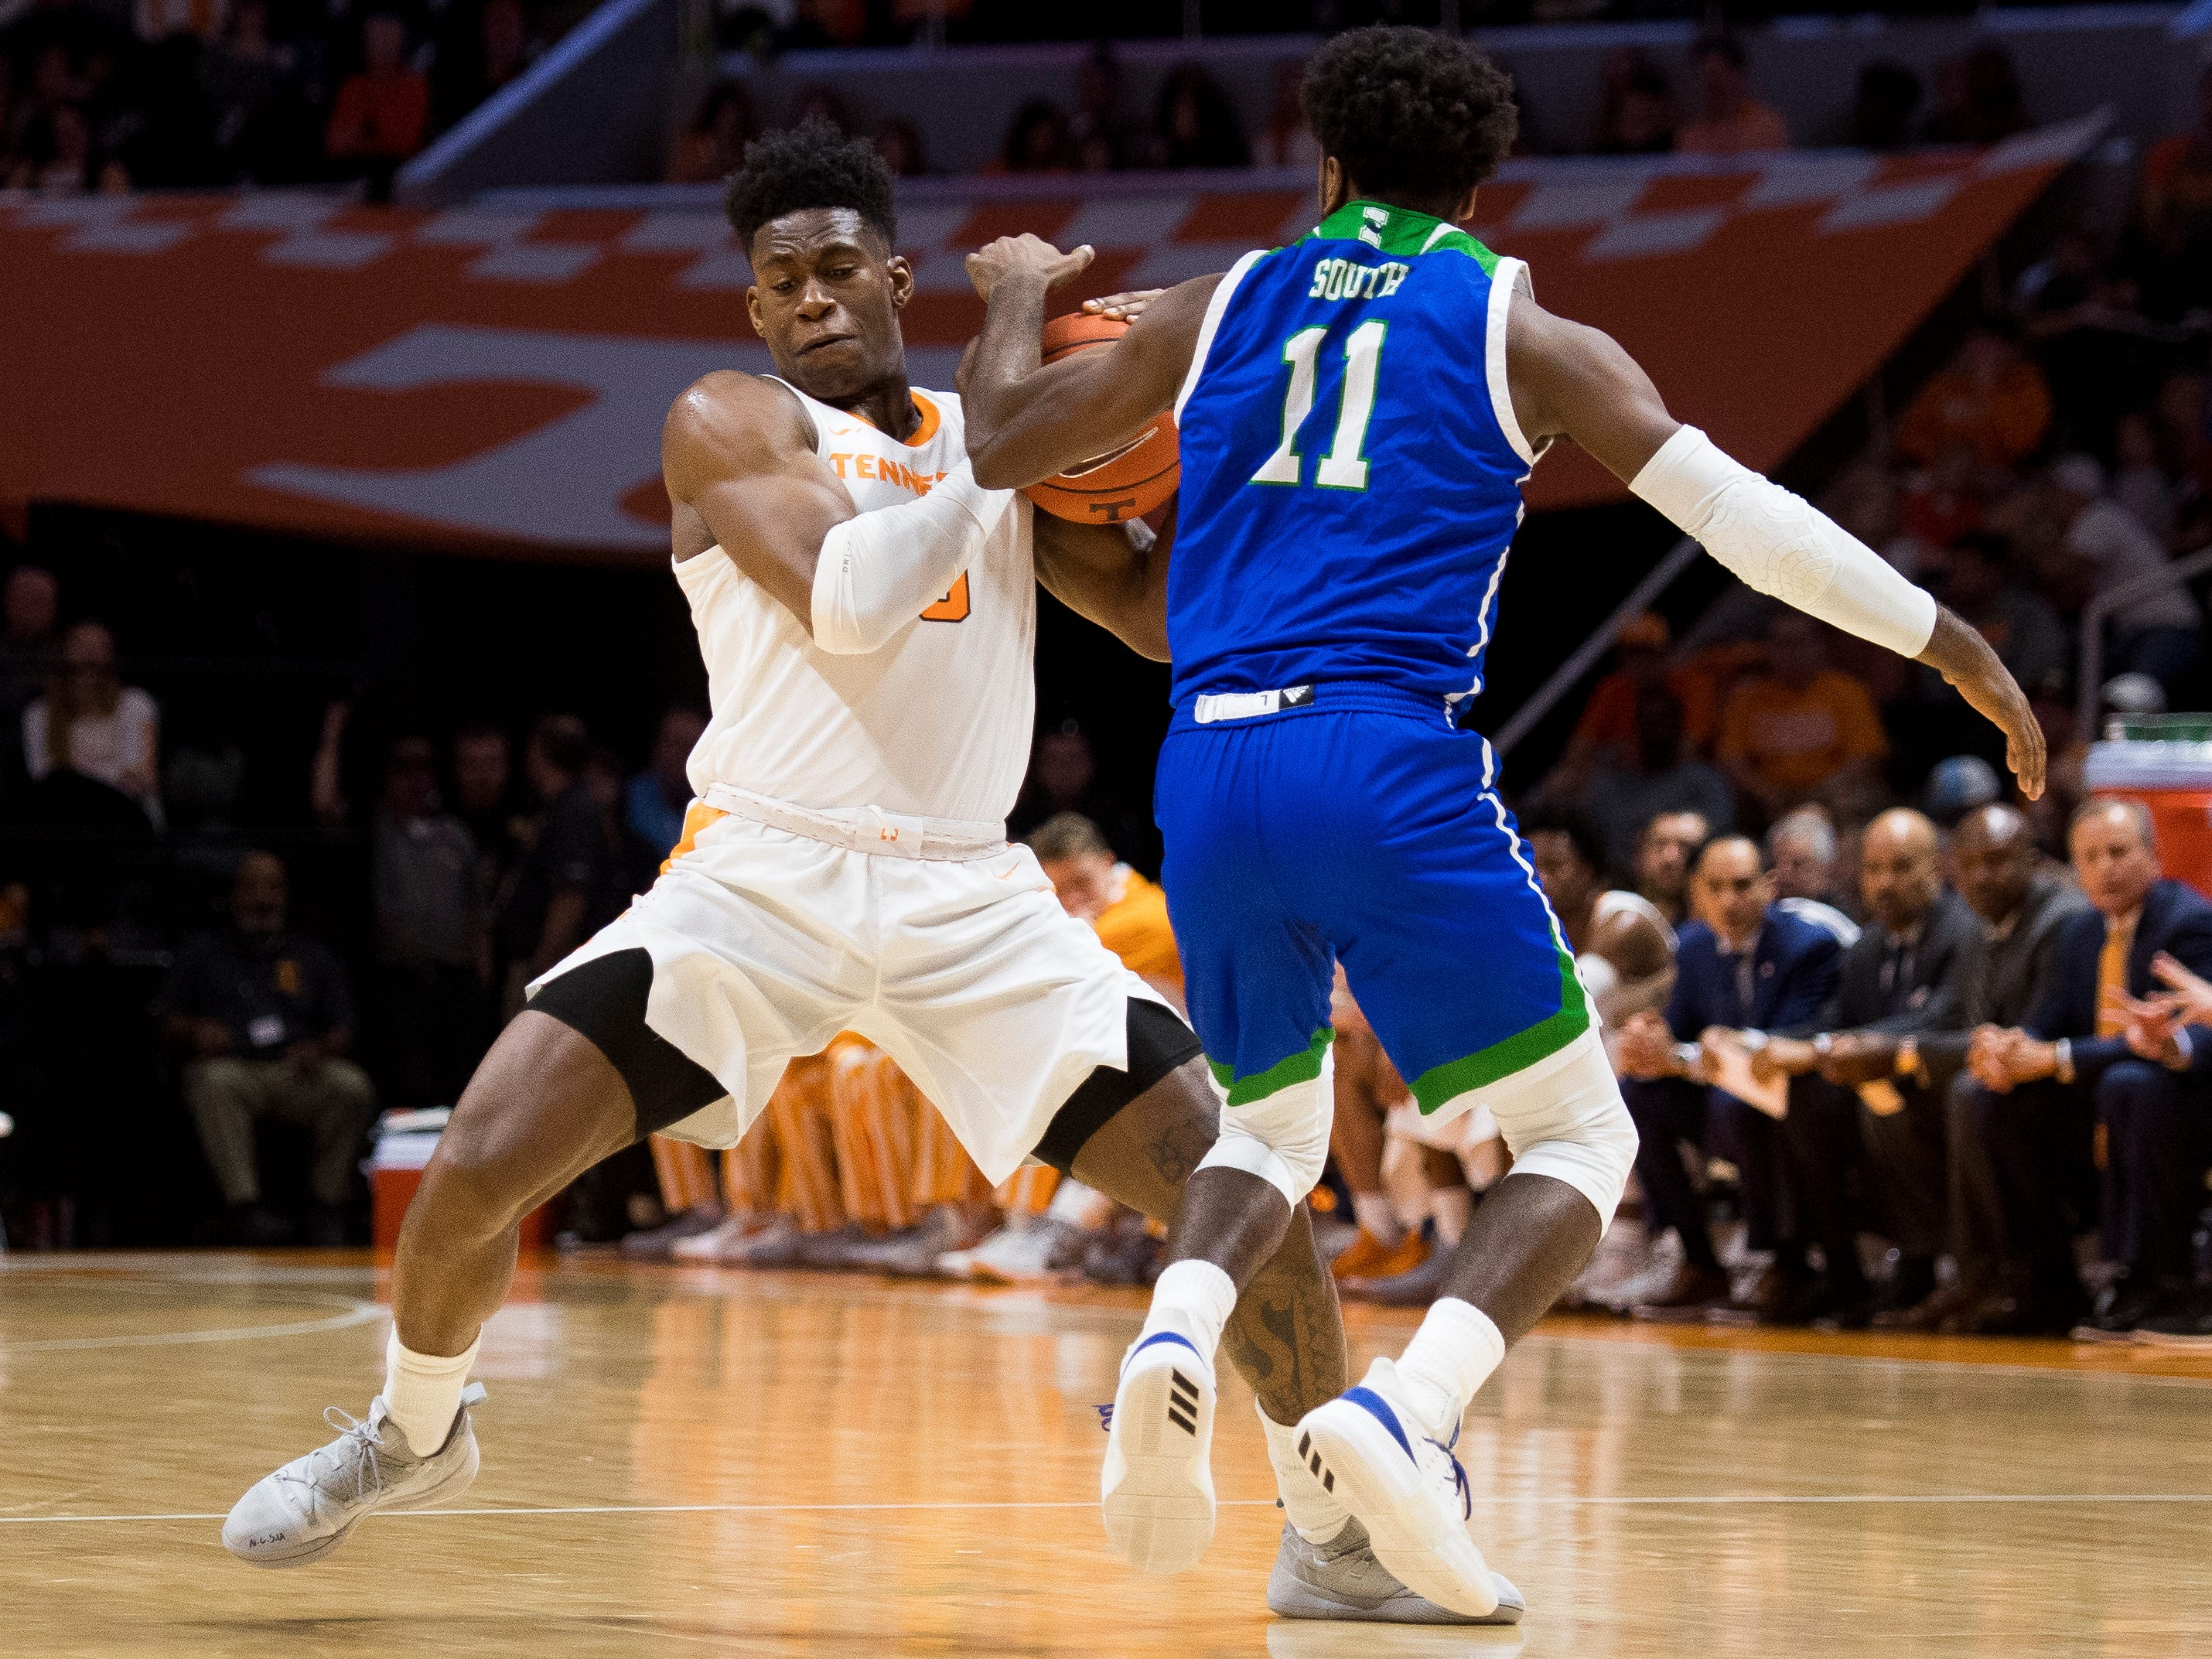 Tennessee guard Admiral Schofield (5) steals the ball away from Texas A&M-Corpus Christi guard Kareem South (11) during the first half of the Tennessee Volunteers' home basketball game against the Texas A&M-Corpus Christi Islanders at Thompson-Boling Arena on Sunday, December 2, 2018.